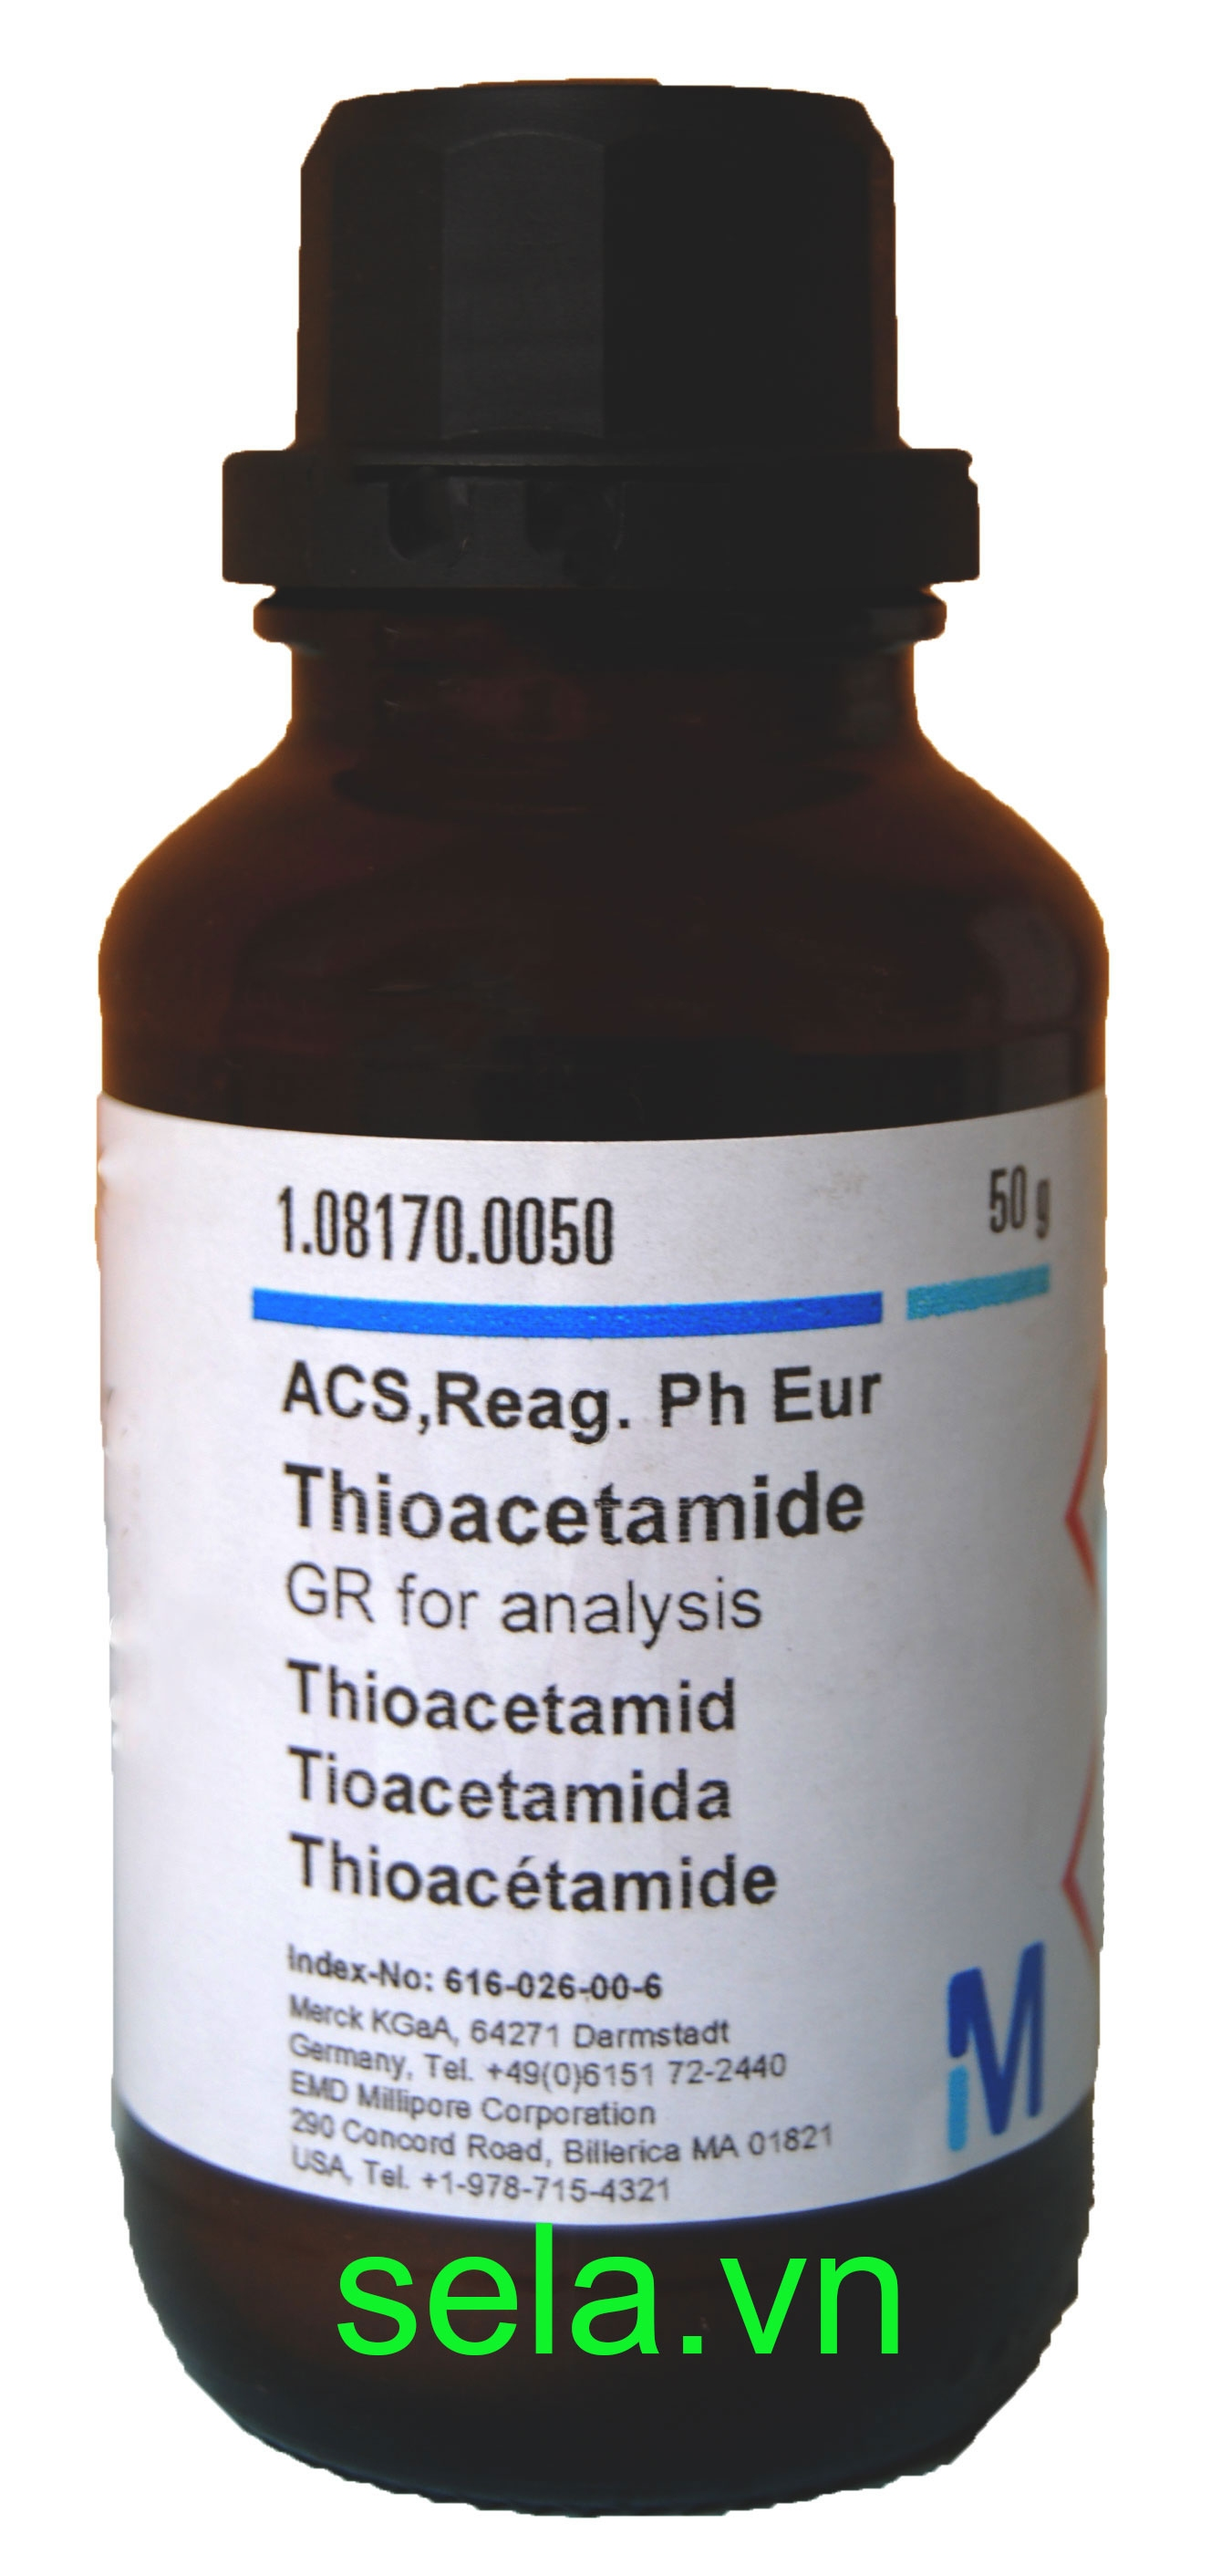 Thioacetamide GR for analysis ACS,Reag. Ph Eur